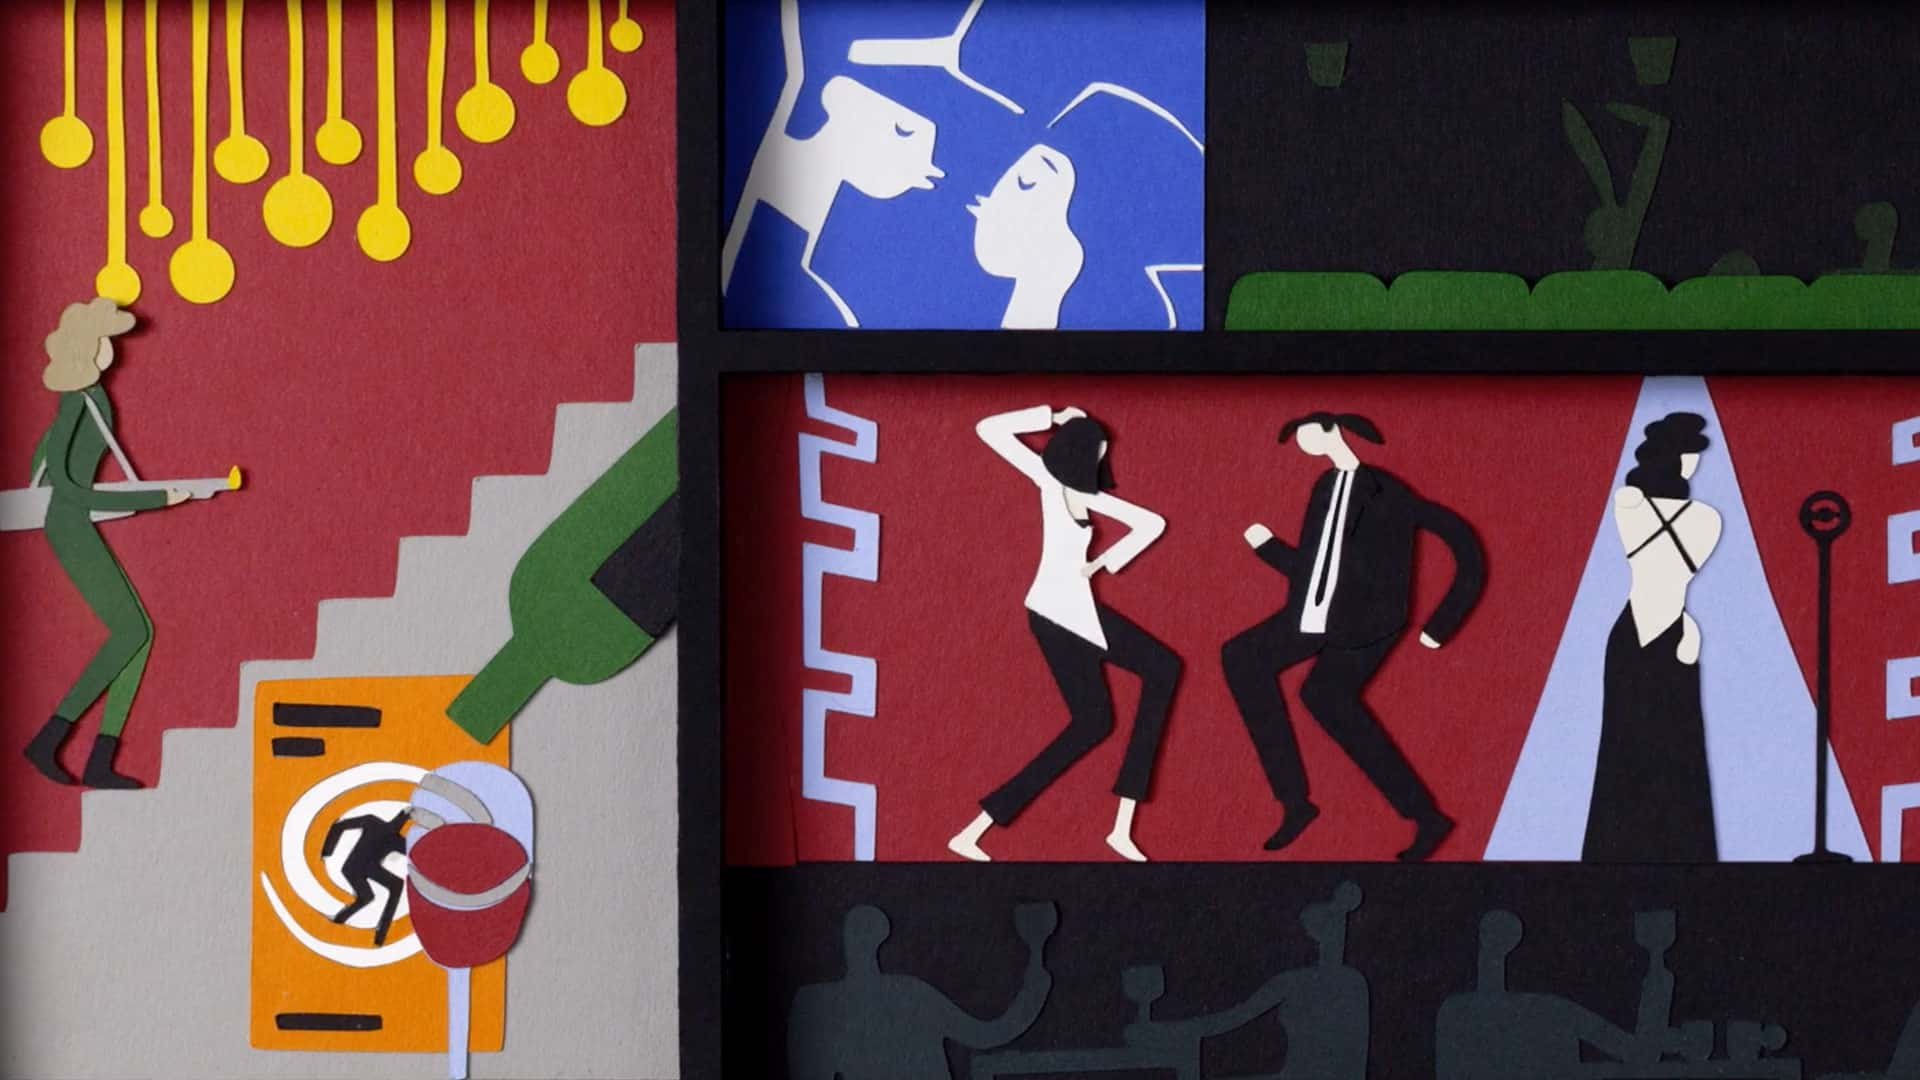 Stop motion paper cut animation for Picturehouse dance scene